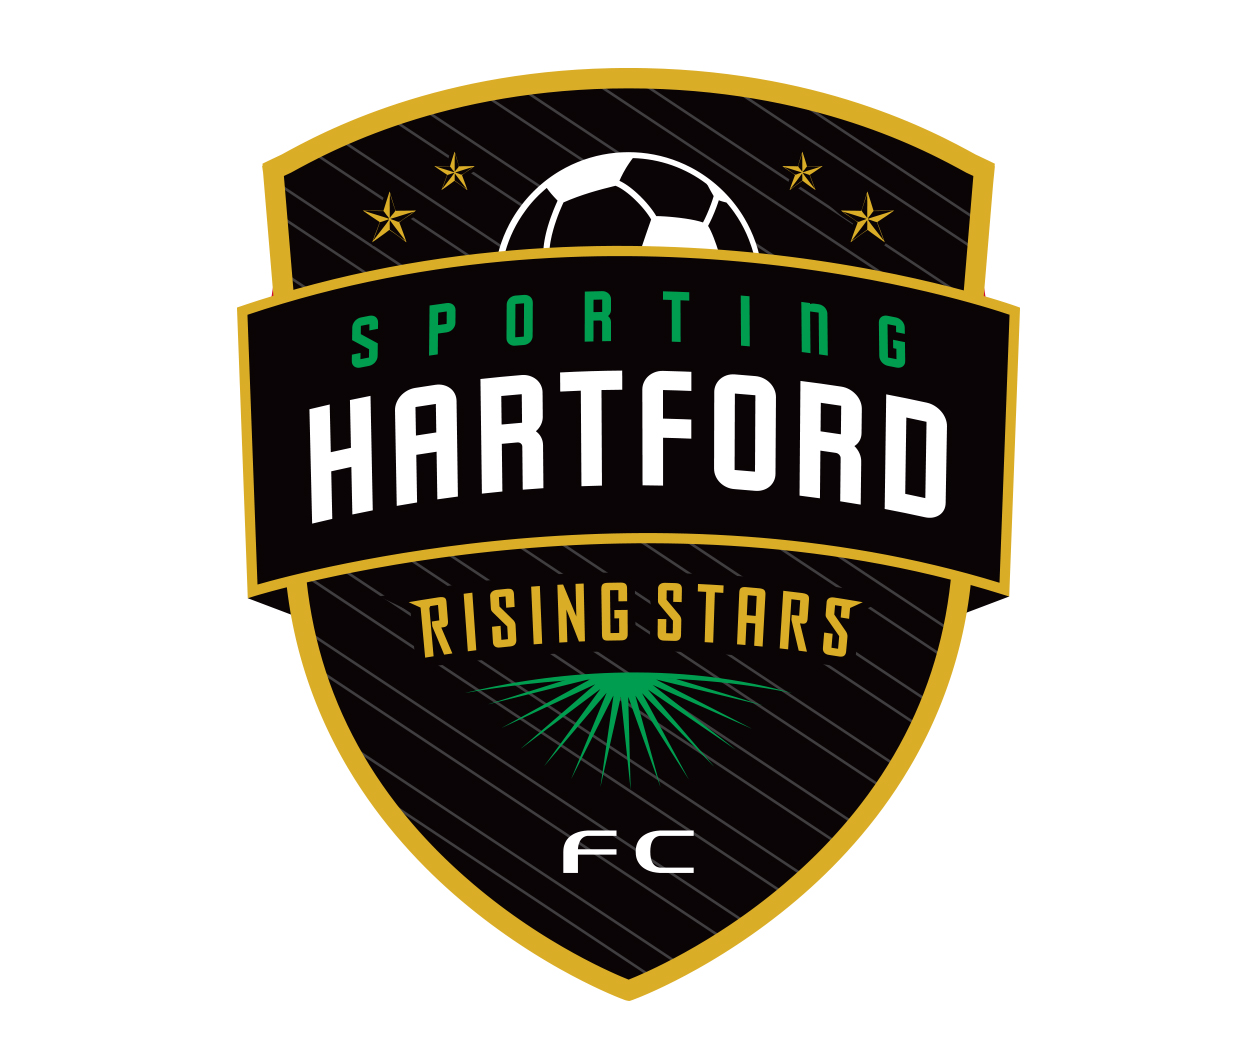 custom-soccer-logo-design-by-jordan-fretz-for-sporting-hartford.jpg